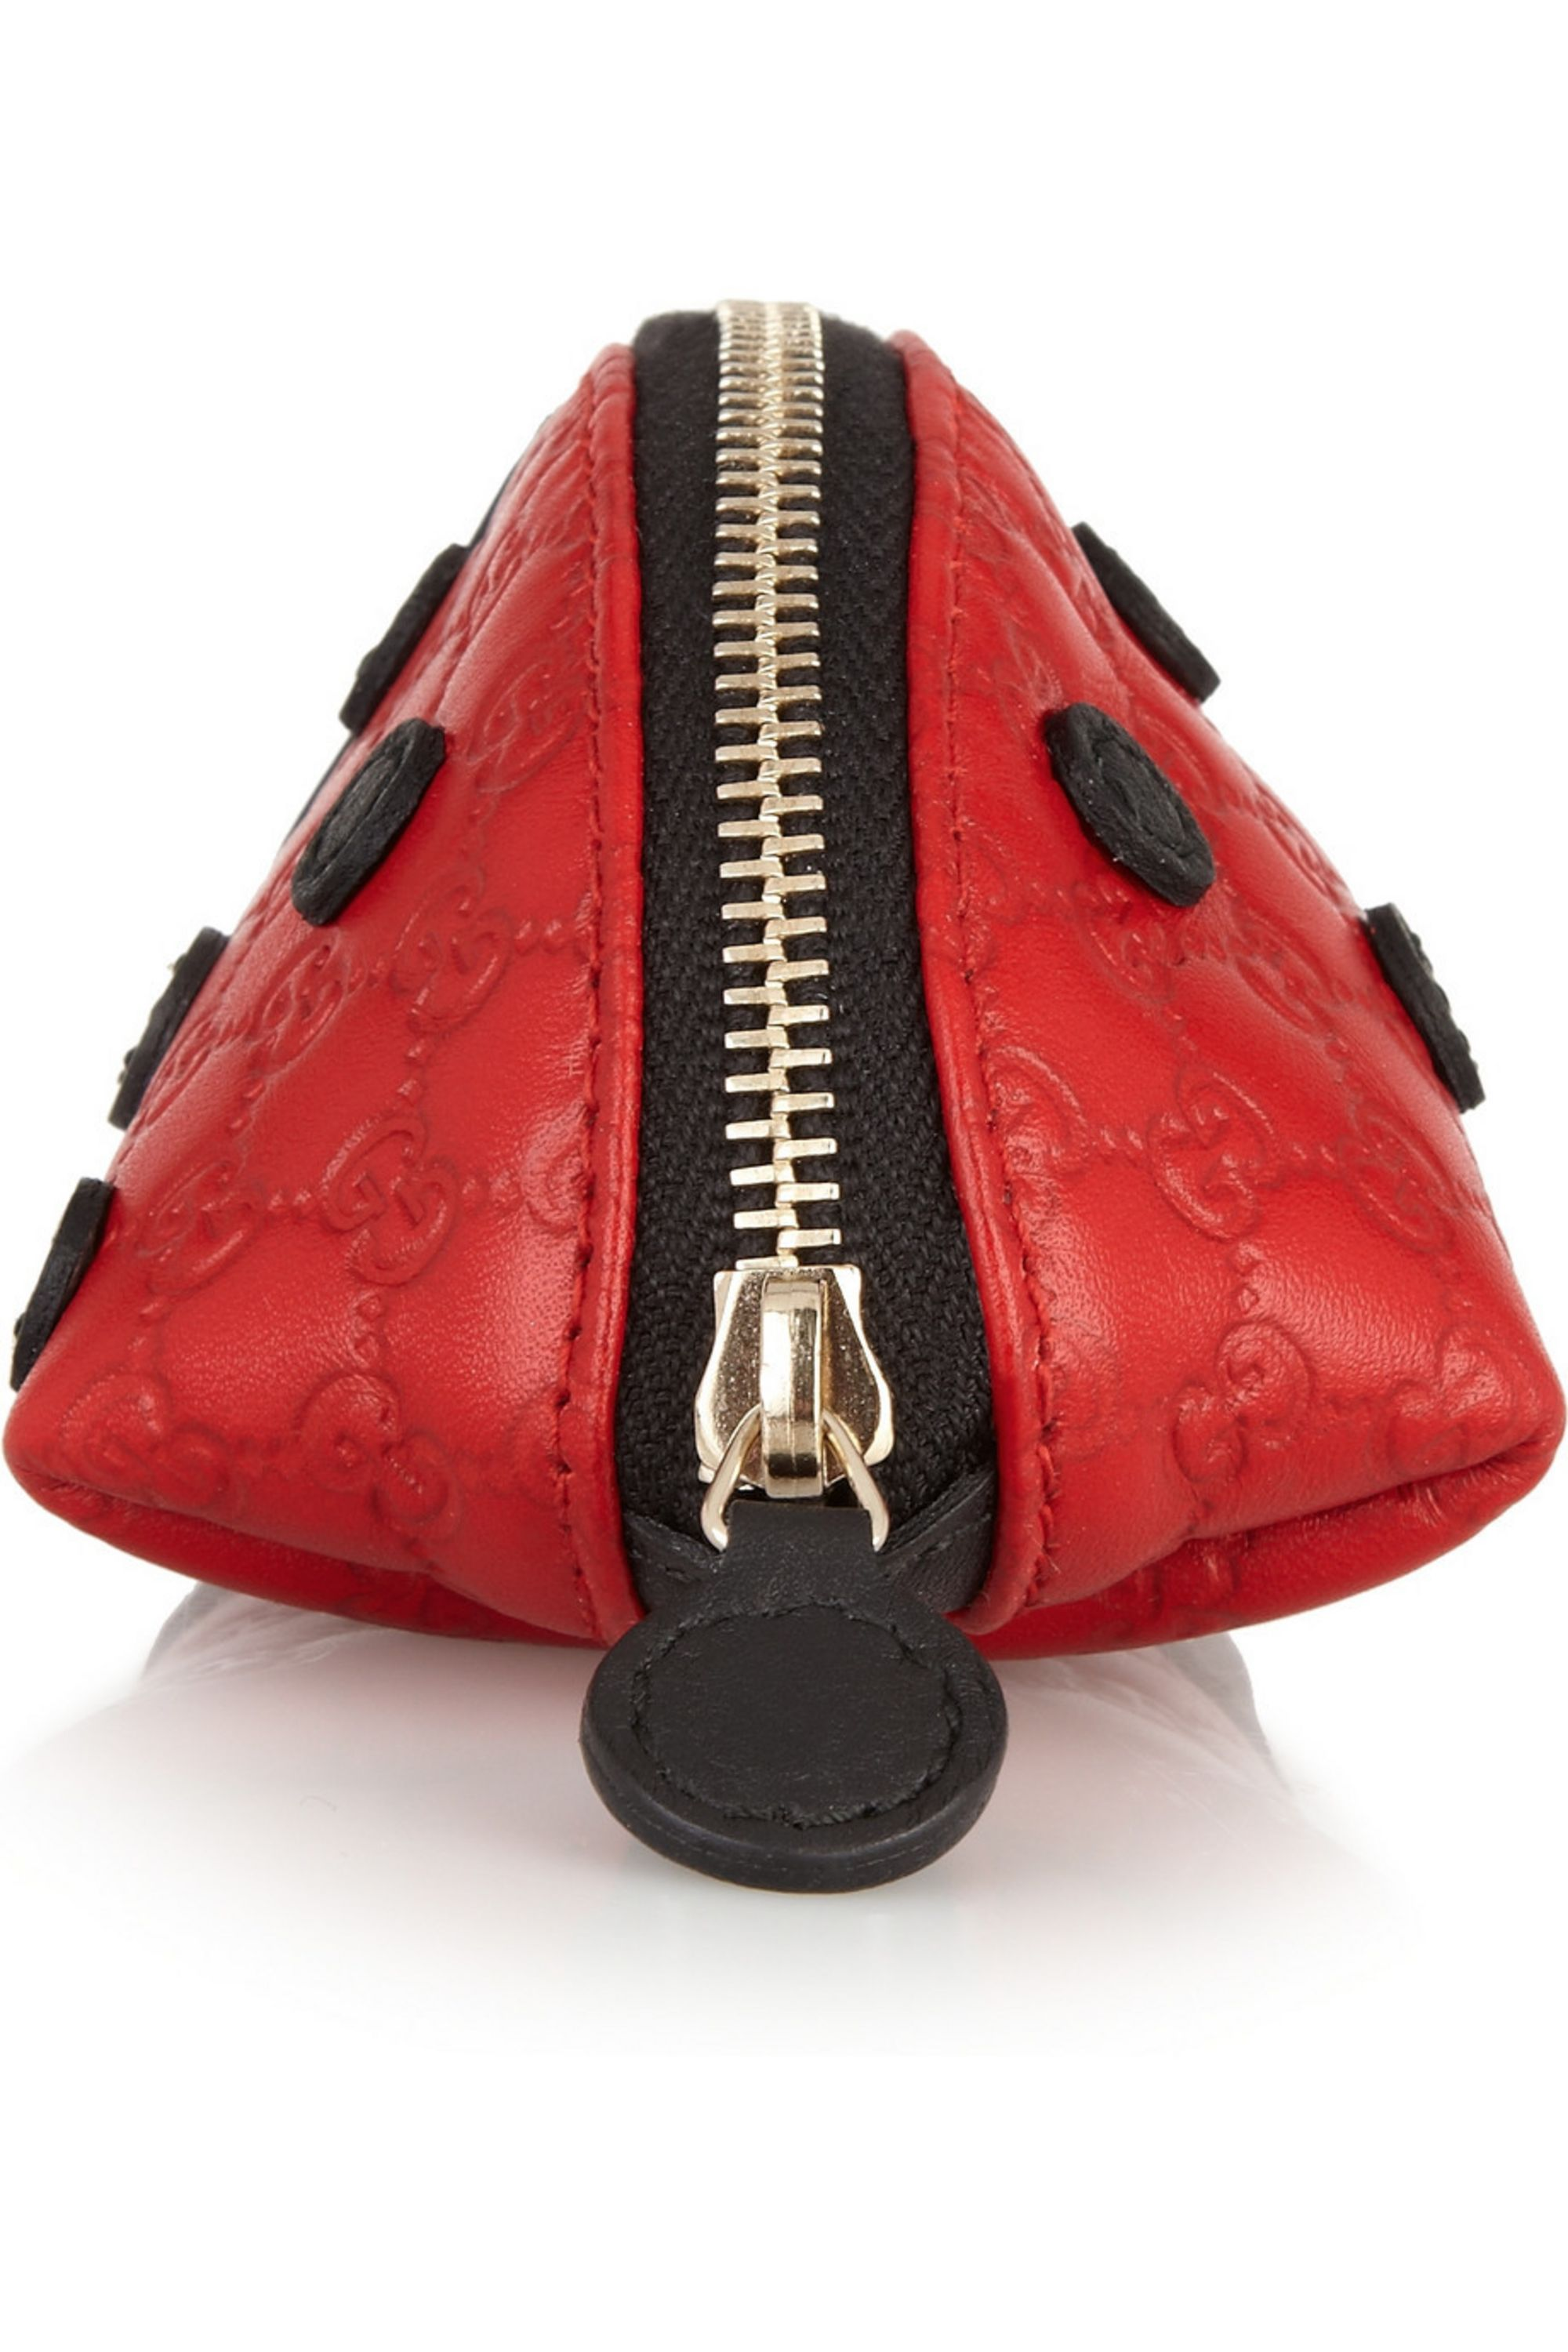 Gucci Lady Bug leather coin purse